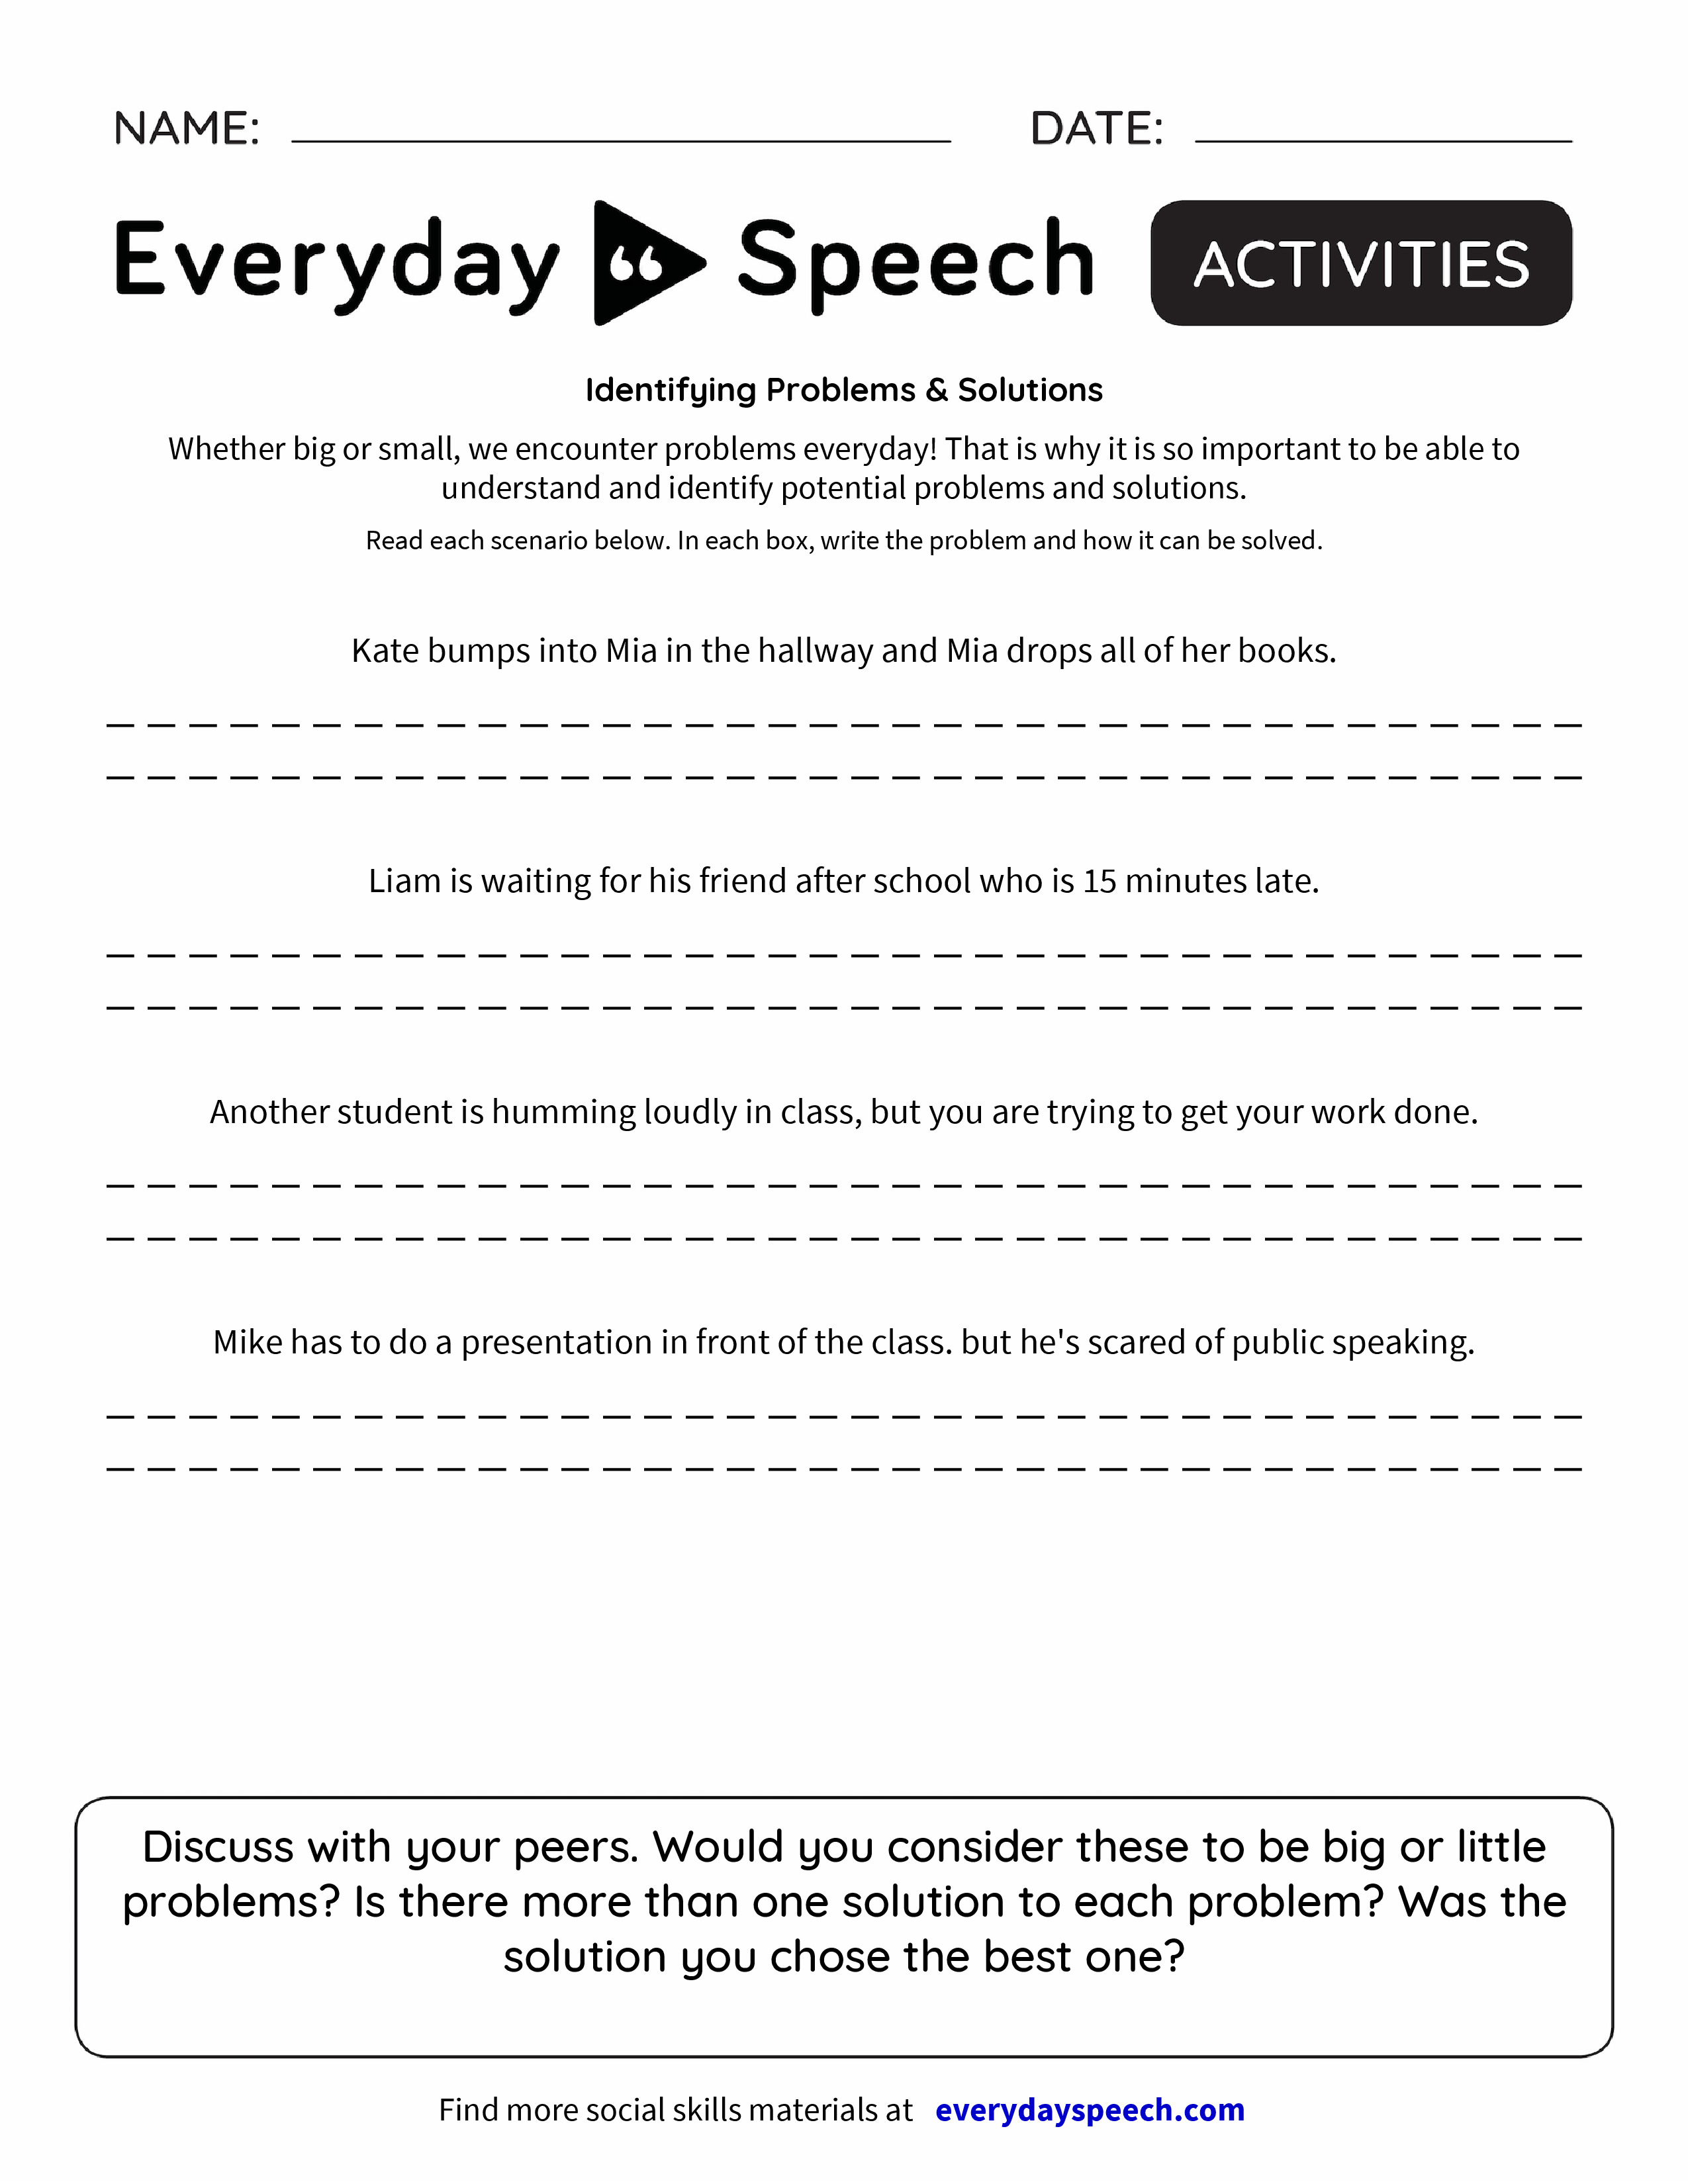 worksheet Problem Solution Worksheets 2nd Grade solution worksheet free worksheets library download and print ident y g problems luti s everyd speech speech